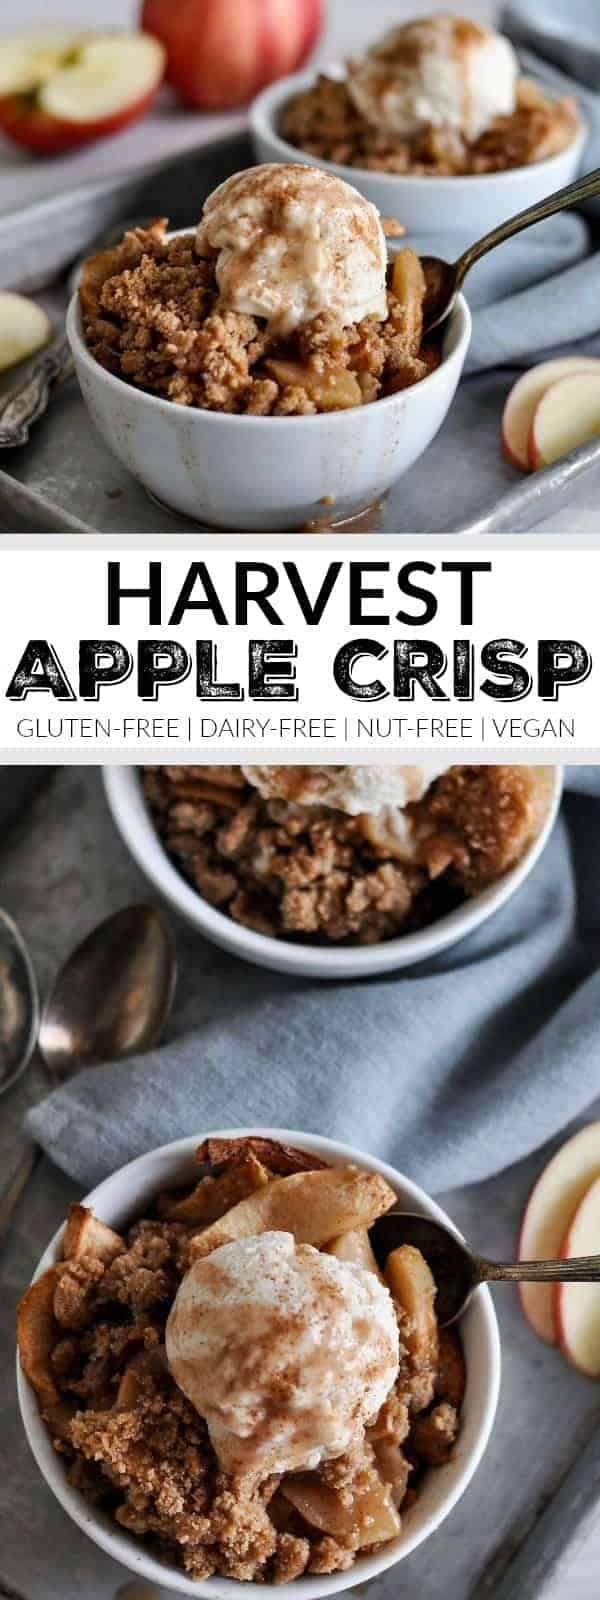 Gluten-free Harvest Apple Crisp | gluten-free fall desserts | gluten-free dessert recipes | gluten-free apple recipes | dairy-free fall desserts | dairy-free dessert recipes | dairy-free apple recipes | nut-free fall desserts | nut-free apple recipes | nut-free dessert recipes | vegan fall desserts | vegan dessert recipes | vegan apple recipes || The Real Food Dietitians